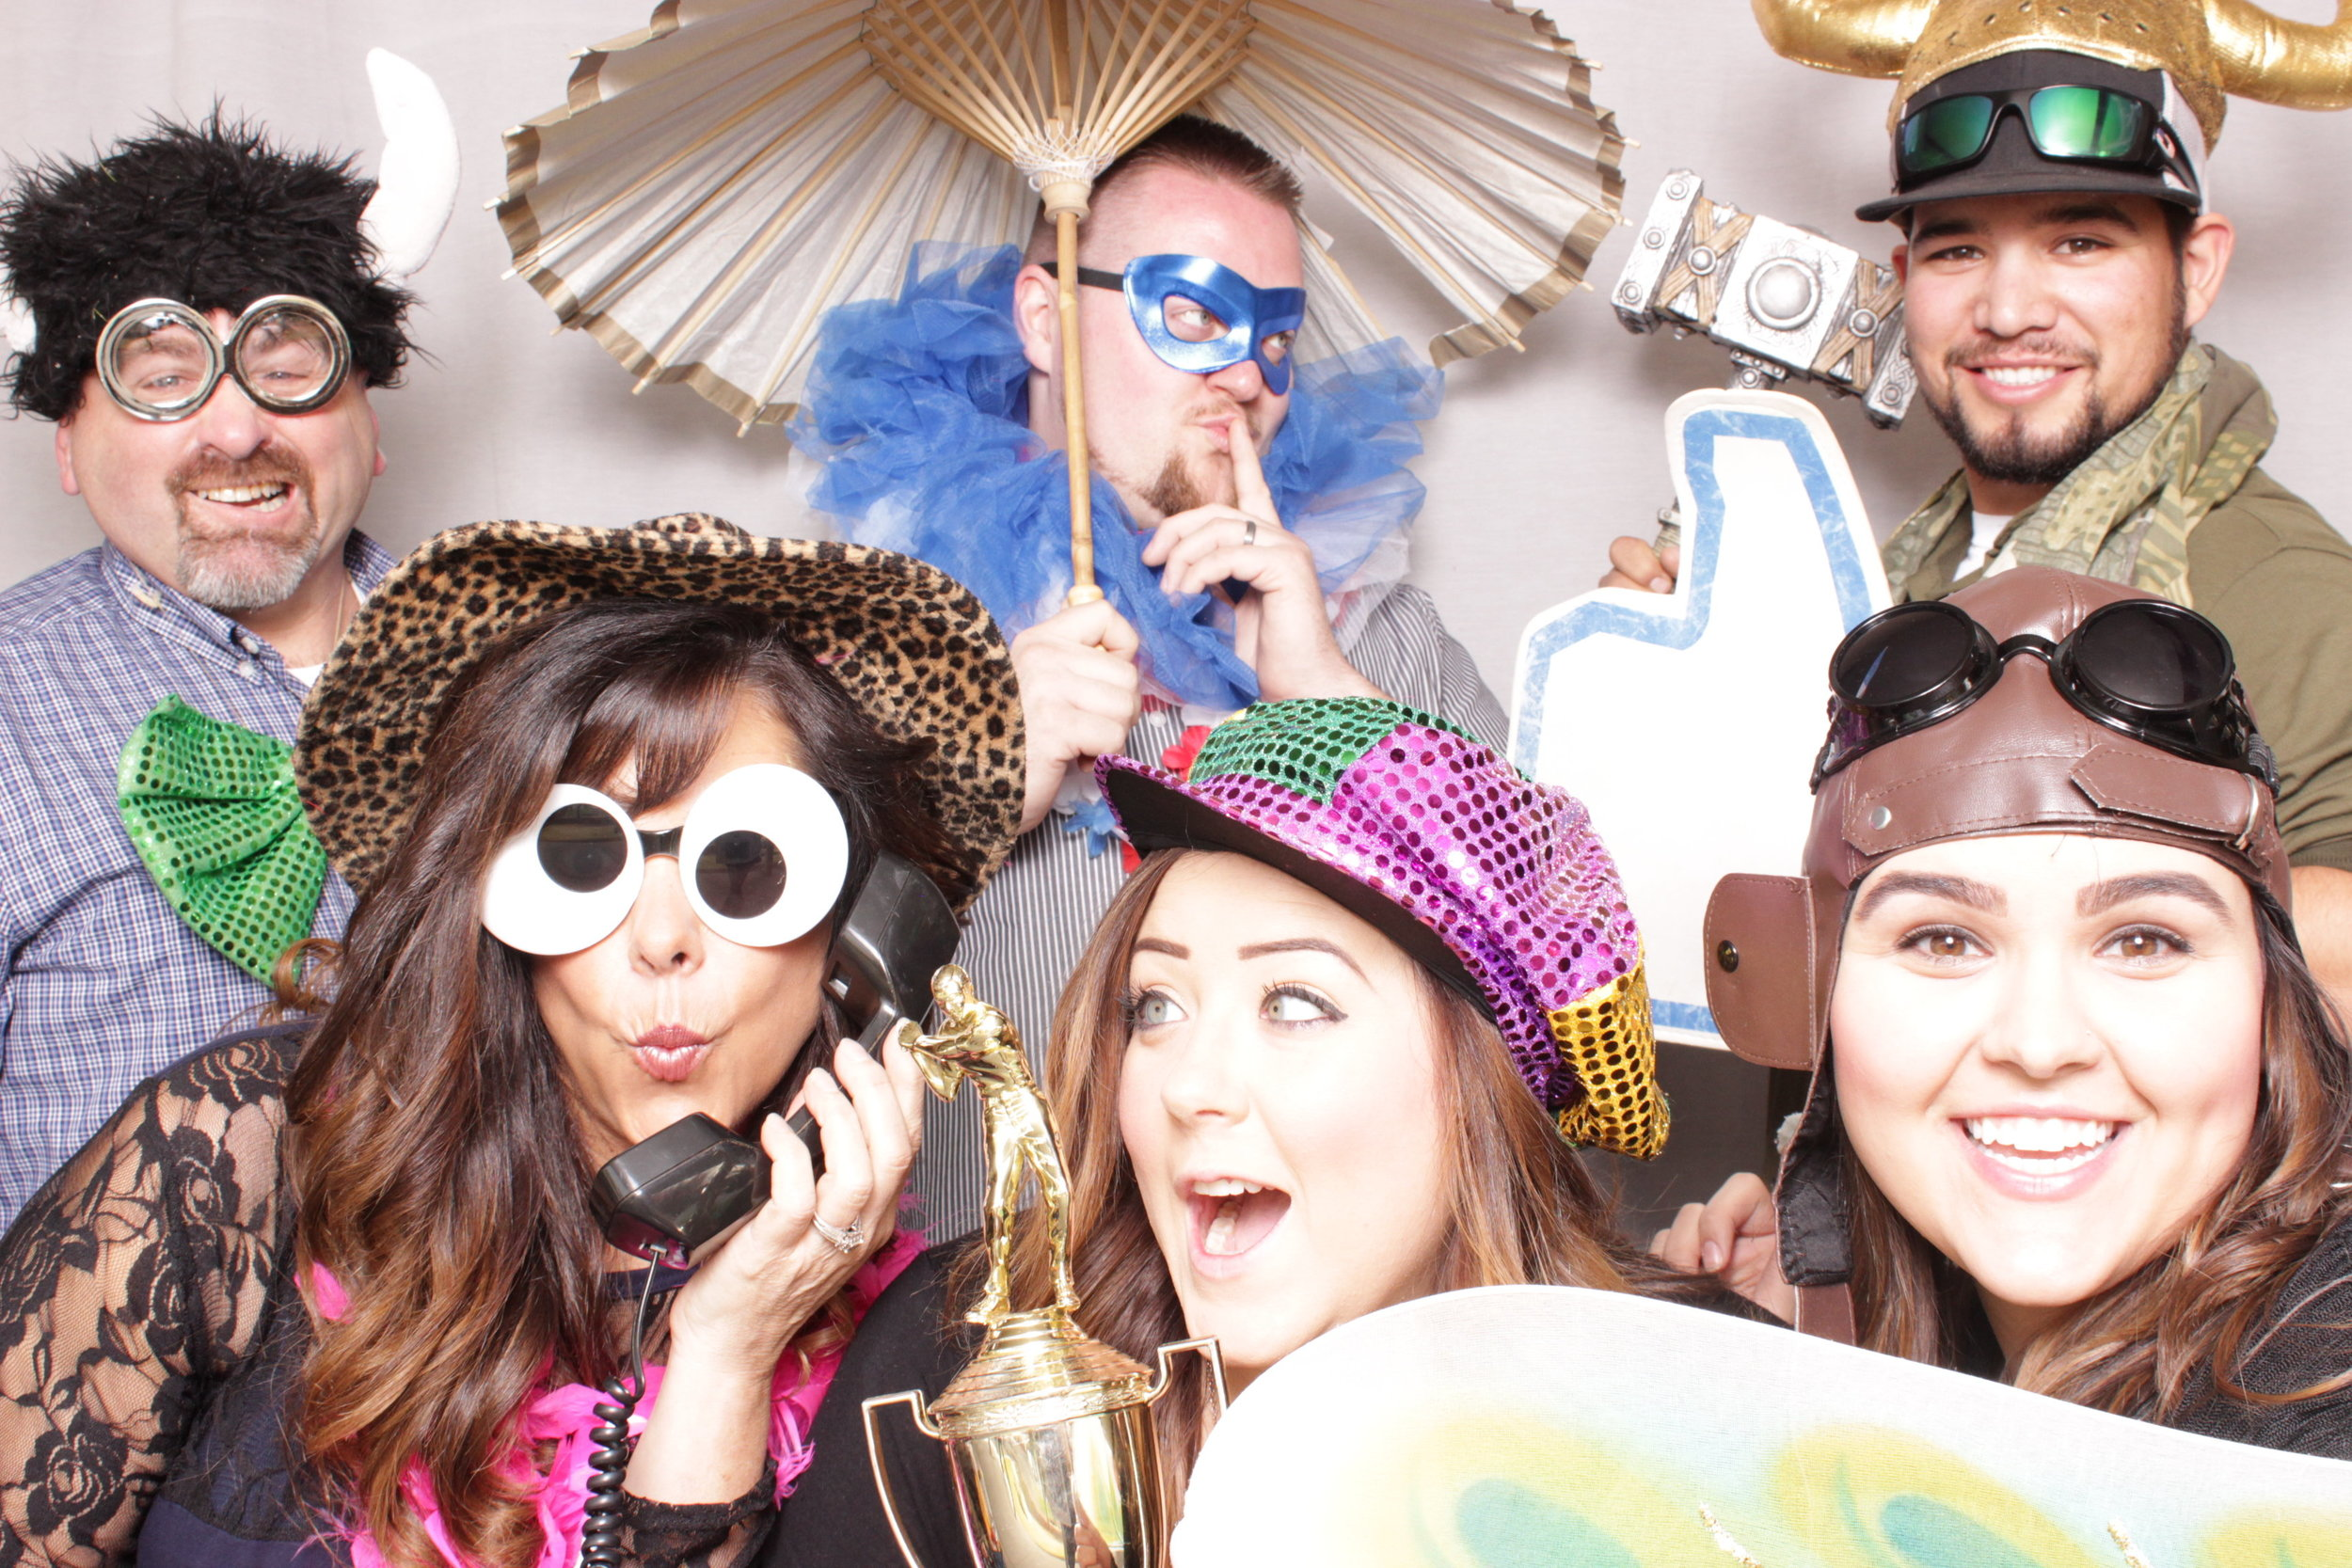 Chico-photo-booth-rental-with-props